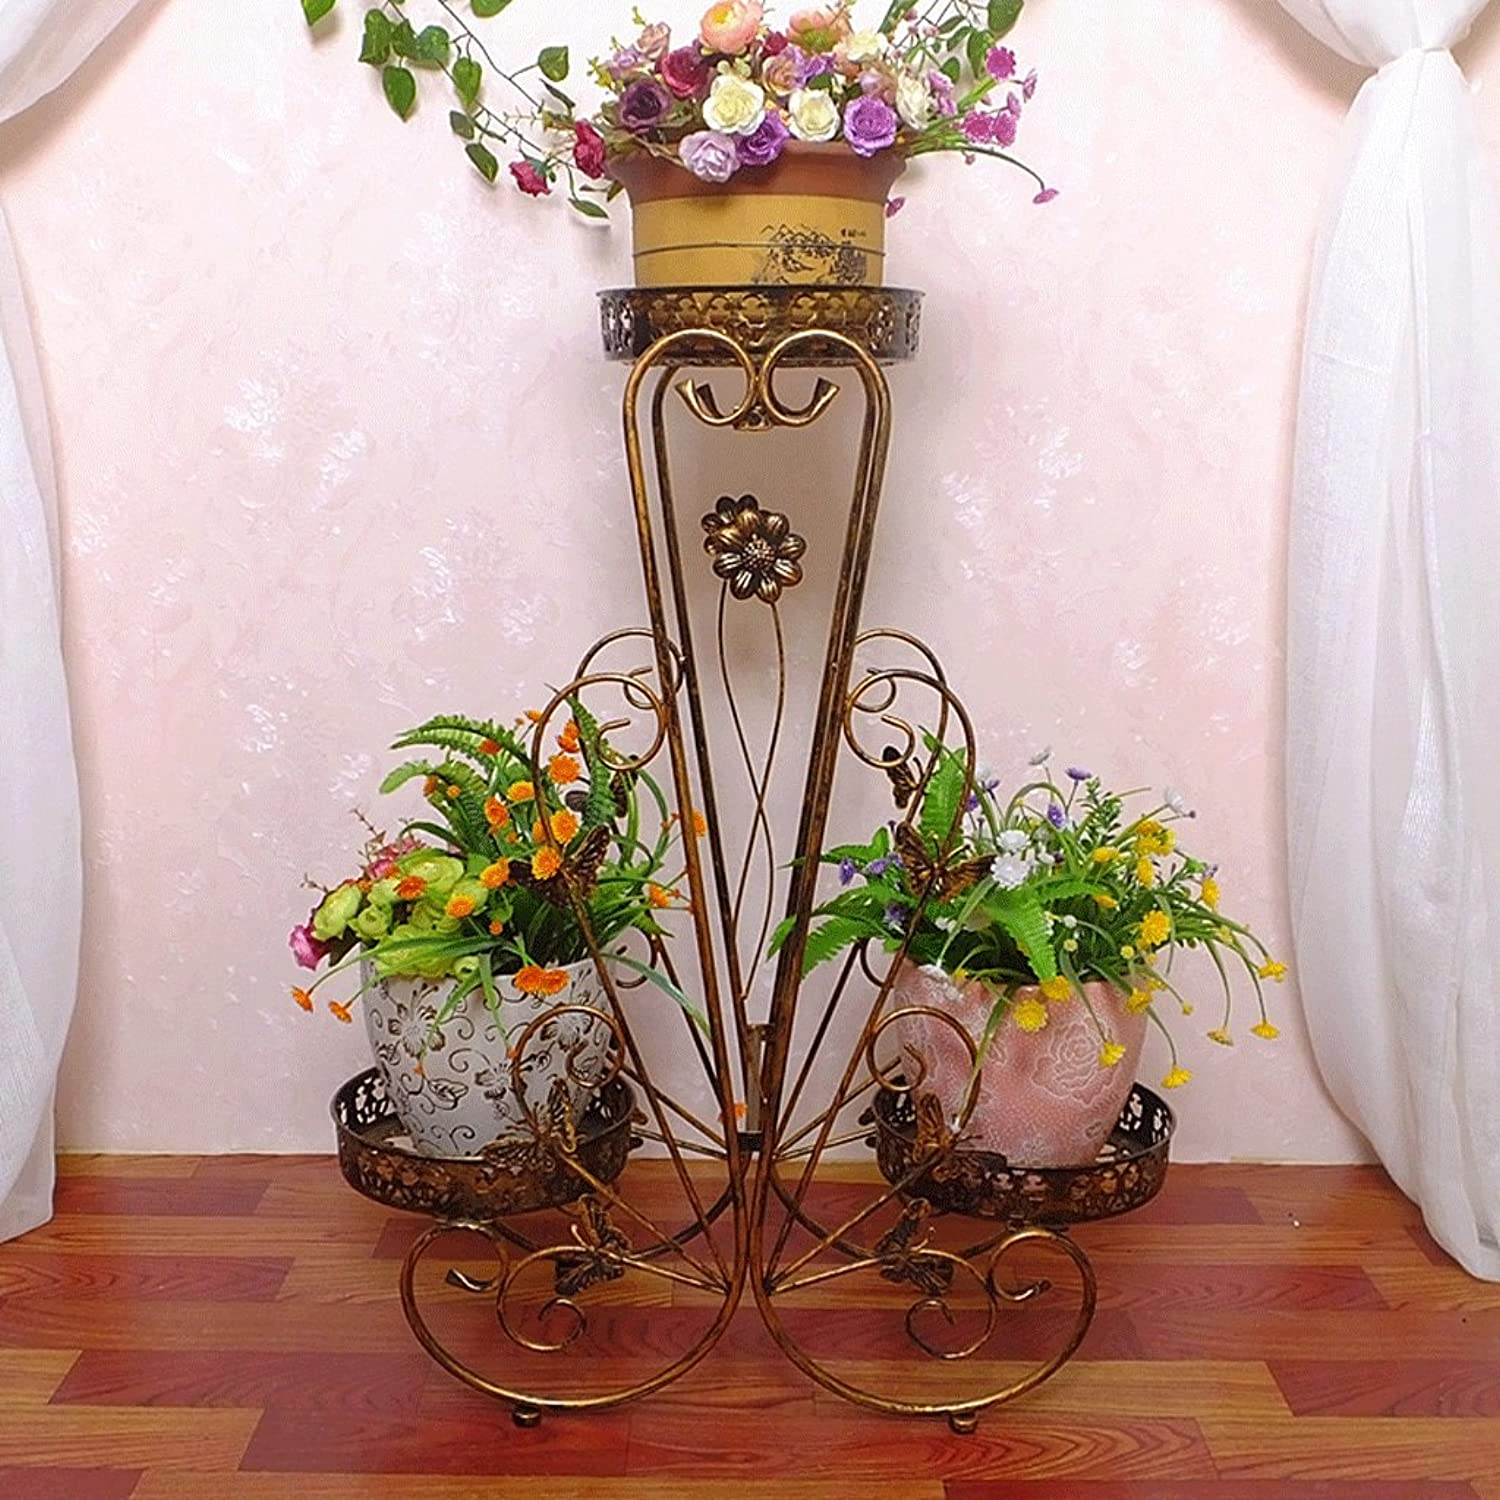 Garden & Home Iron Art Plant Stand Multilayer Indoor Living Room Balcony Corner Floor-Standing Flower Basket Flower Stand 4KG(9LBS) (color   White)